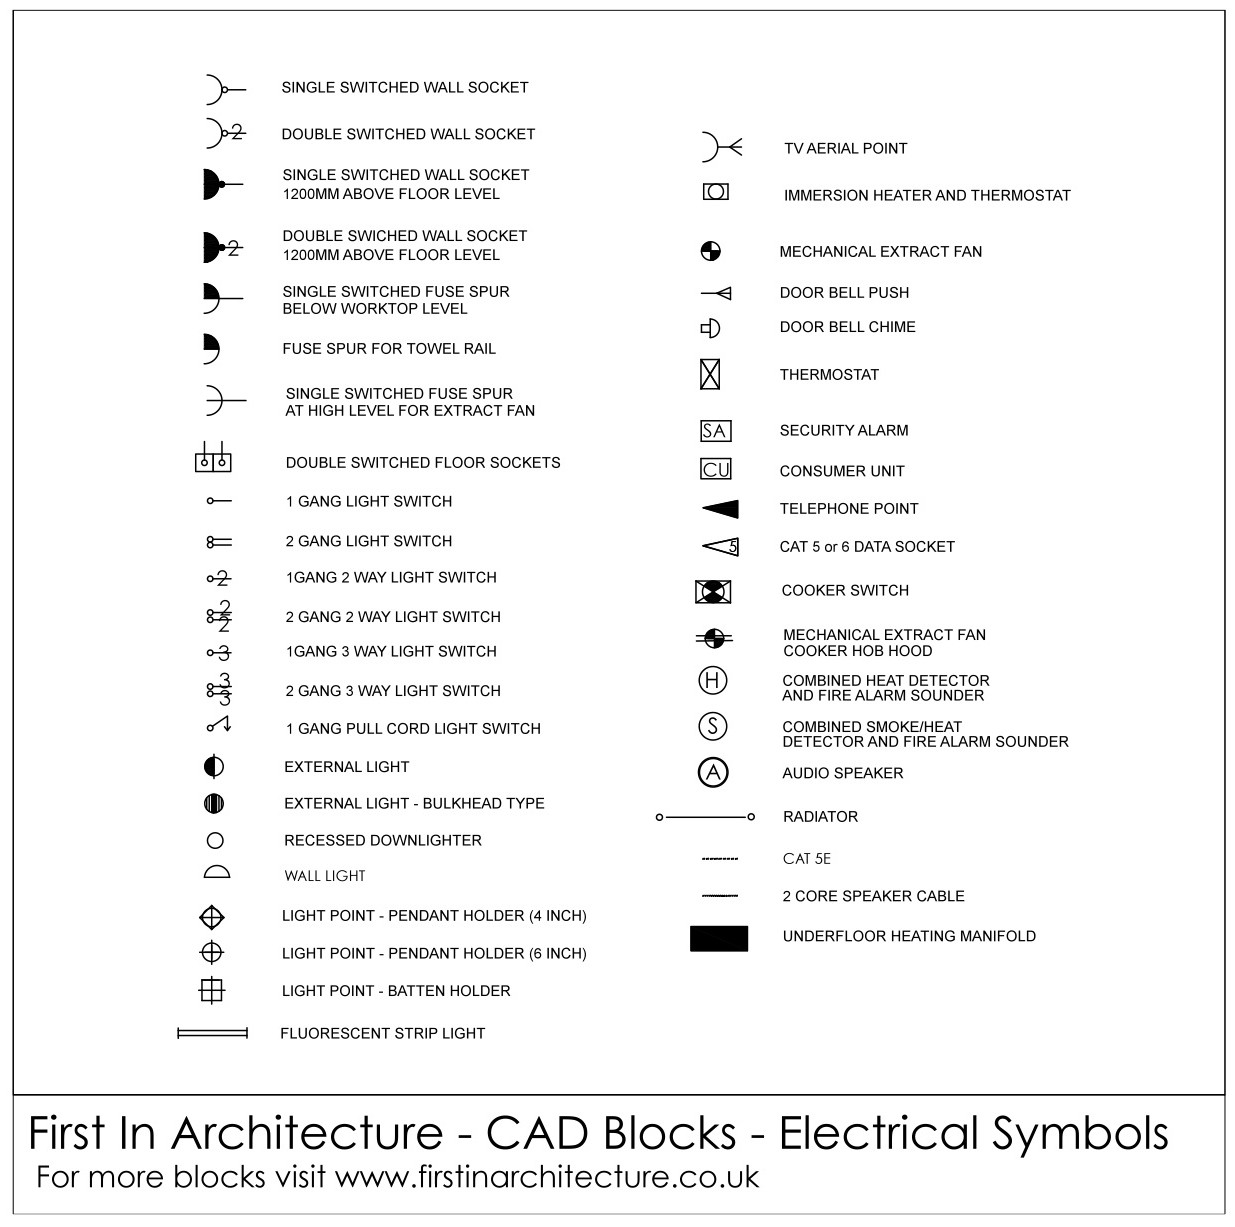 Free cad blocks electrical symbols first in architecture for What is the standard electrical service for residential